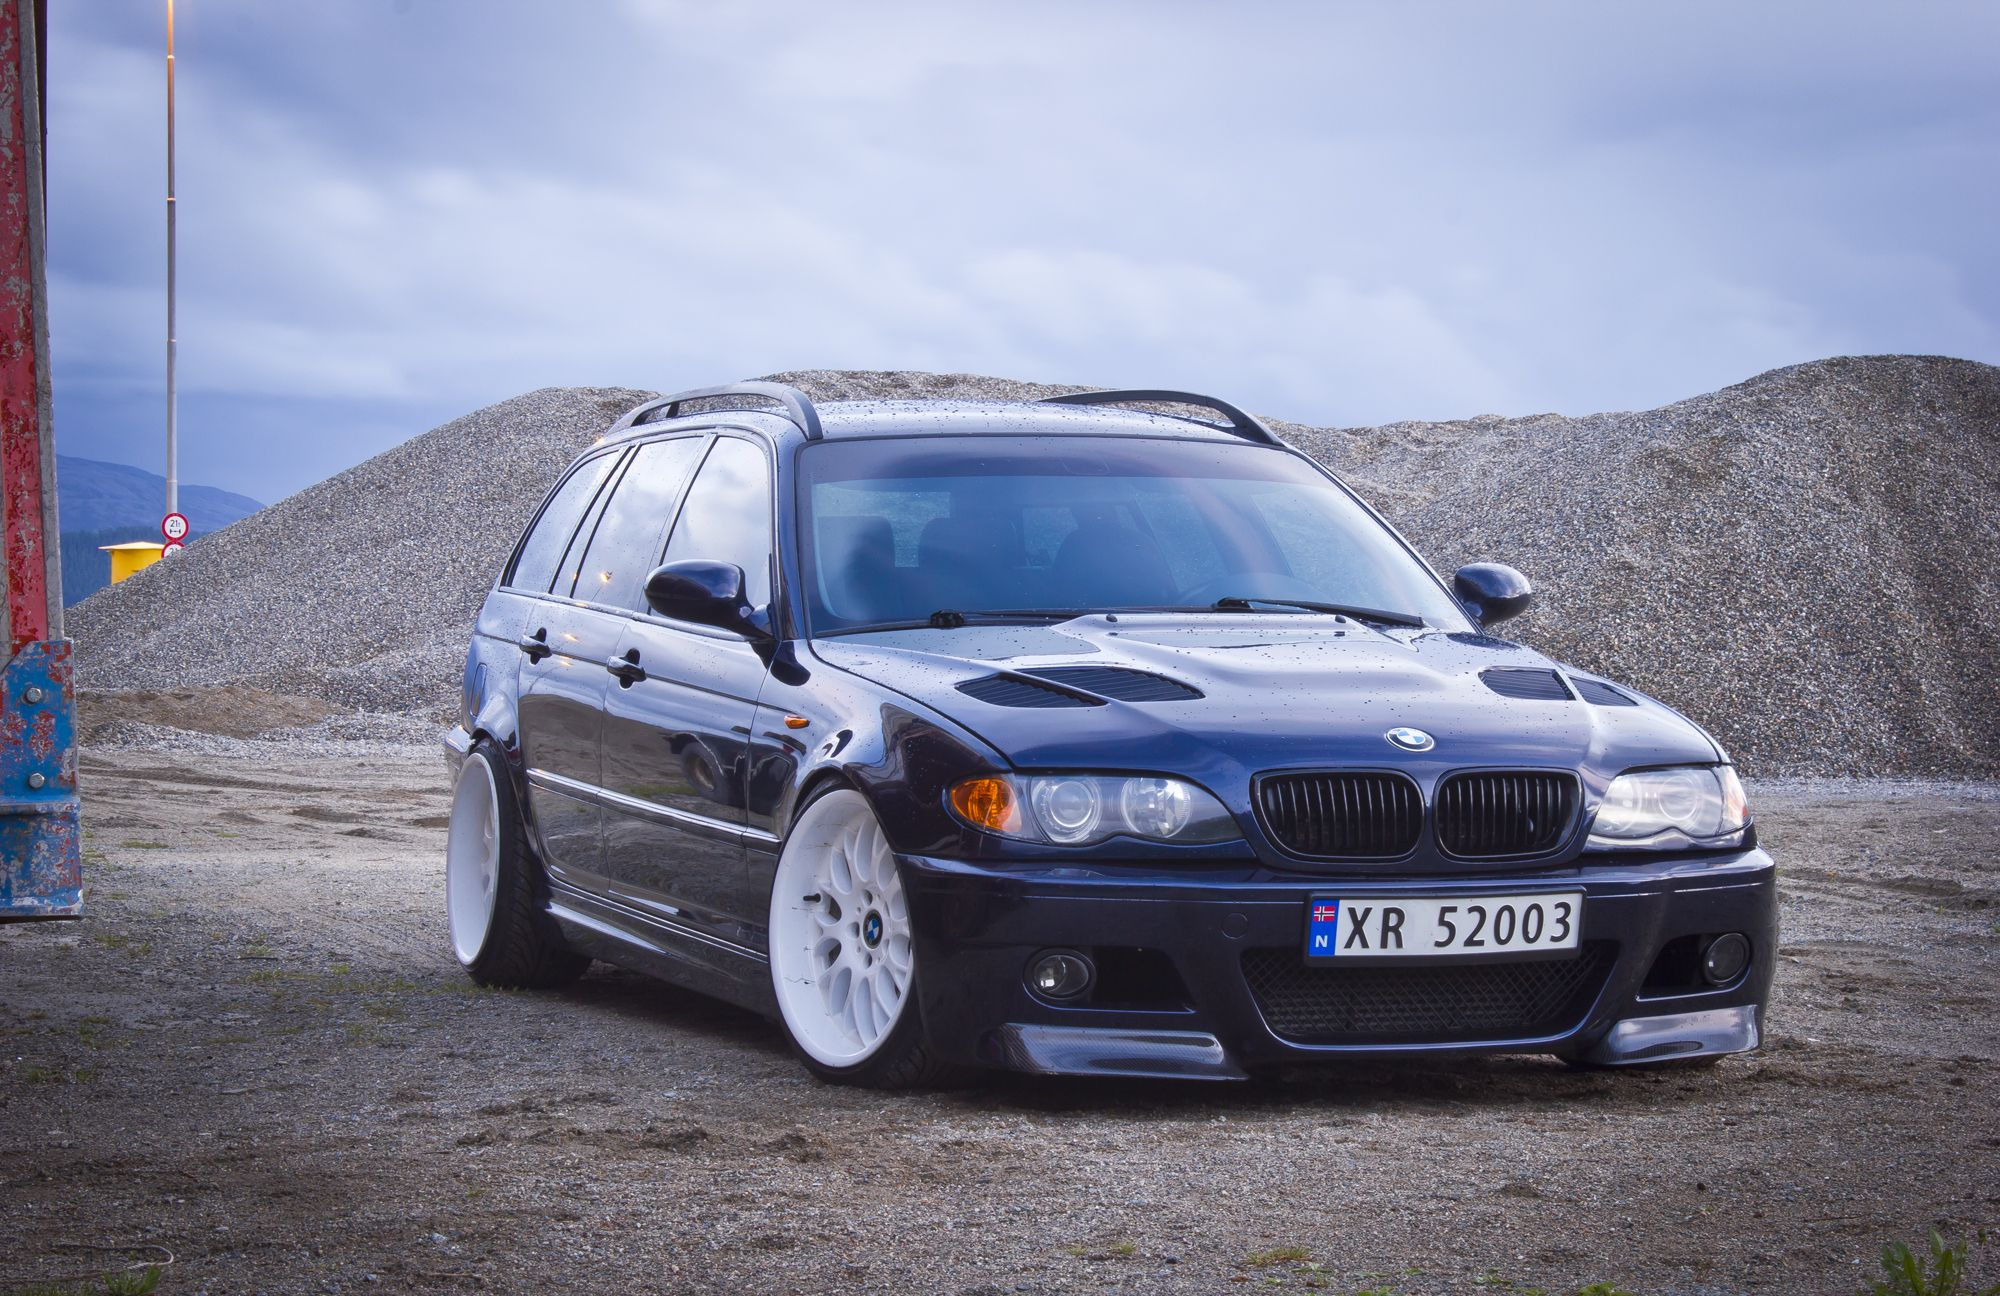 my orientblau e46 touring widebody page 2 e46fanatics autopia pinterest bmw bmw e46. Black Bedroom Furniture Sets. Home Design Ideas